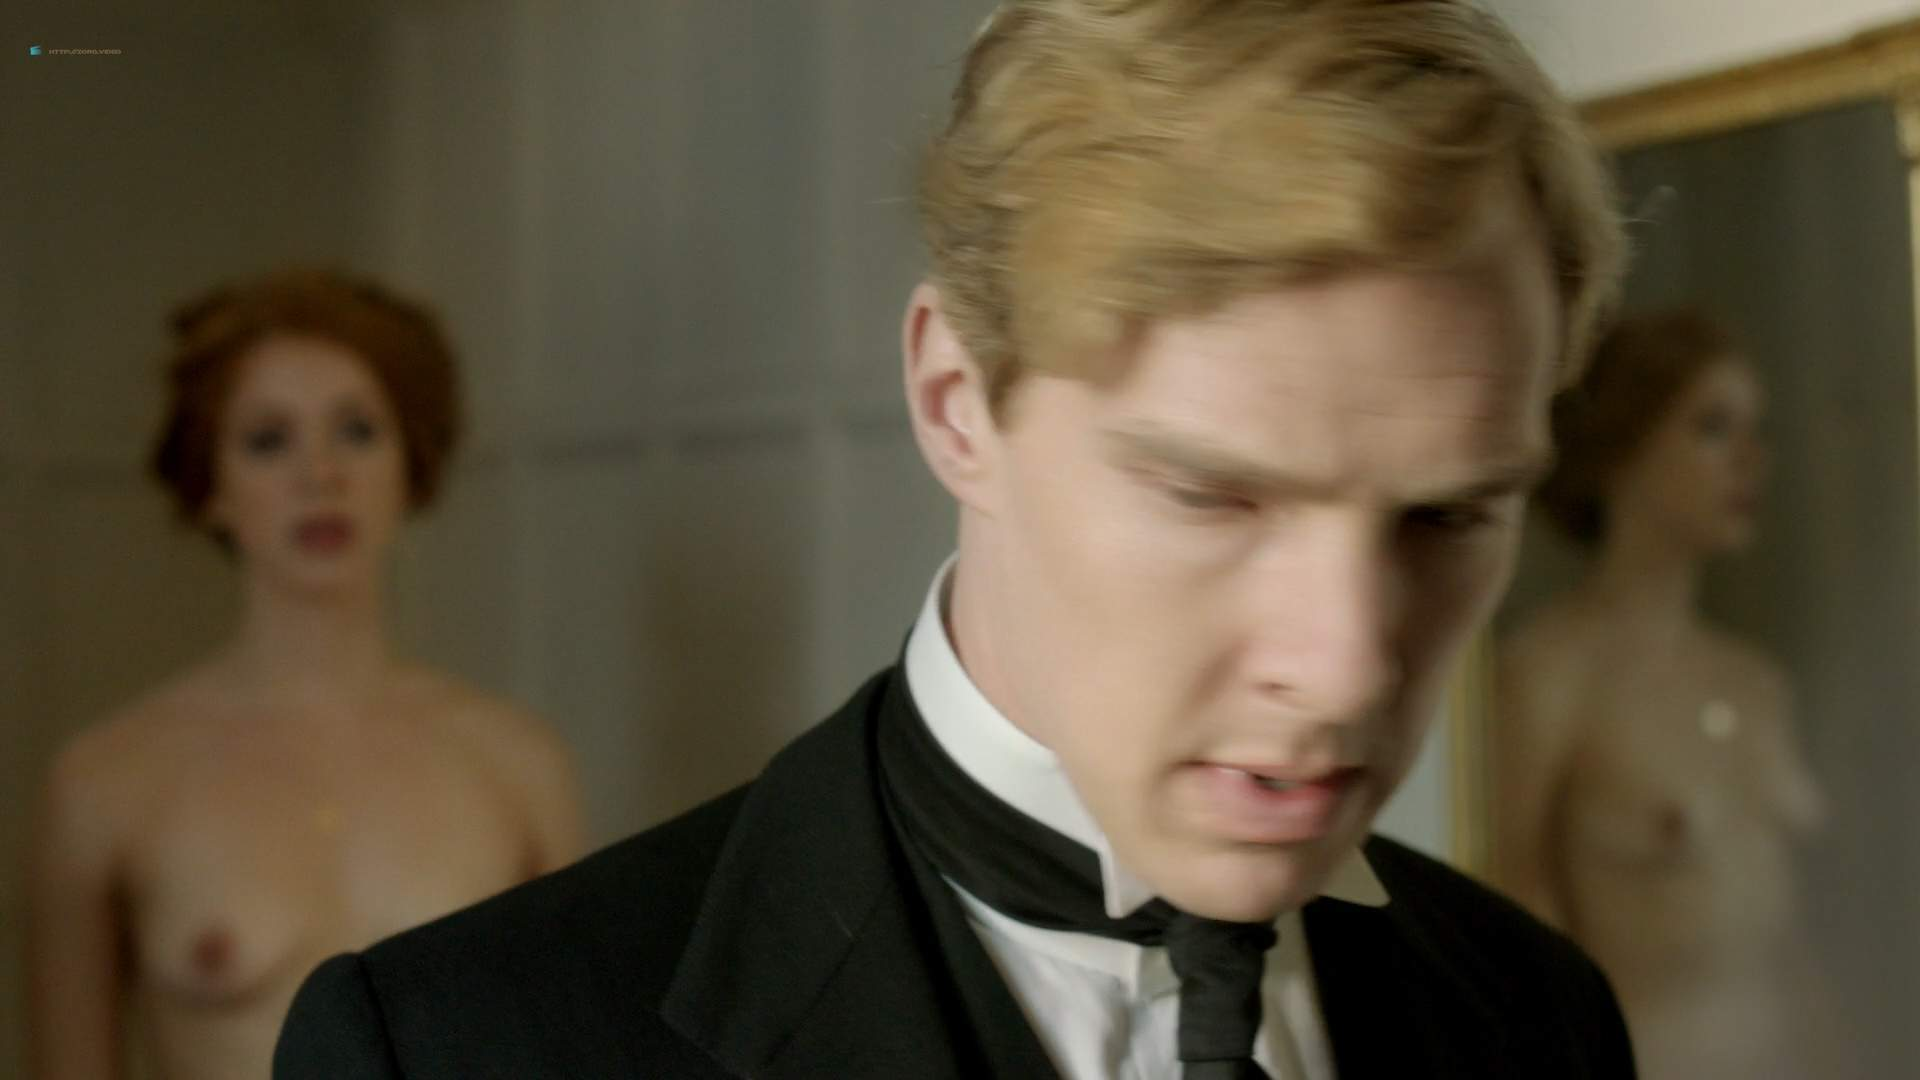 Adelaide clemens parades end 6